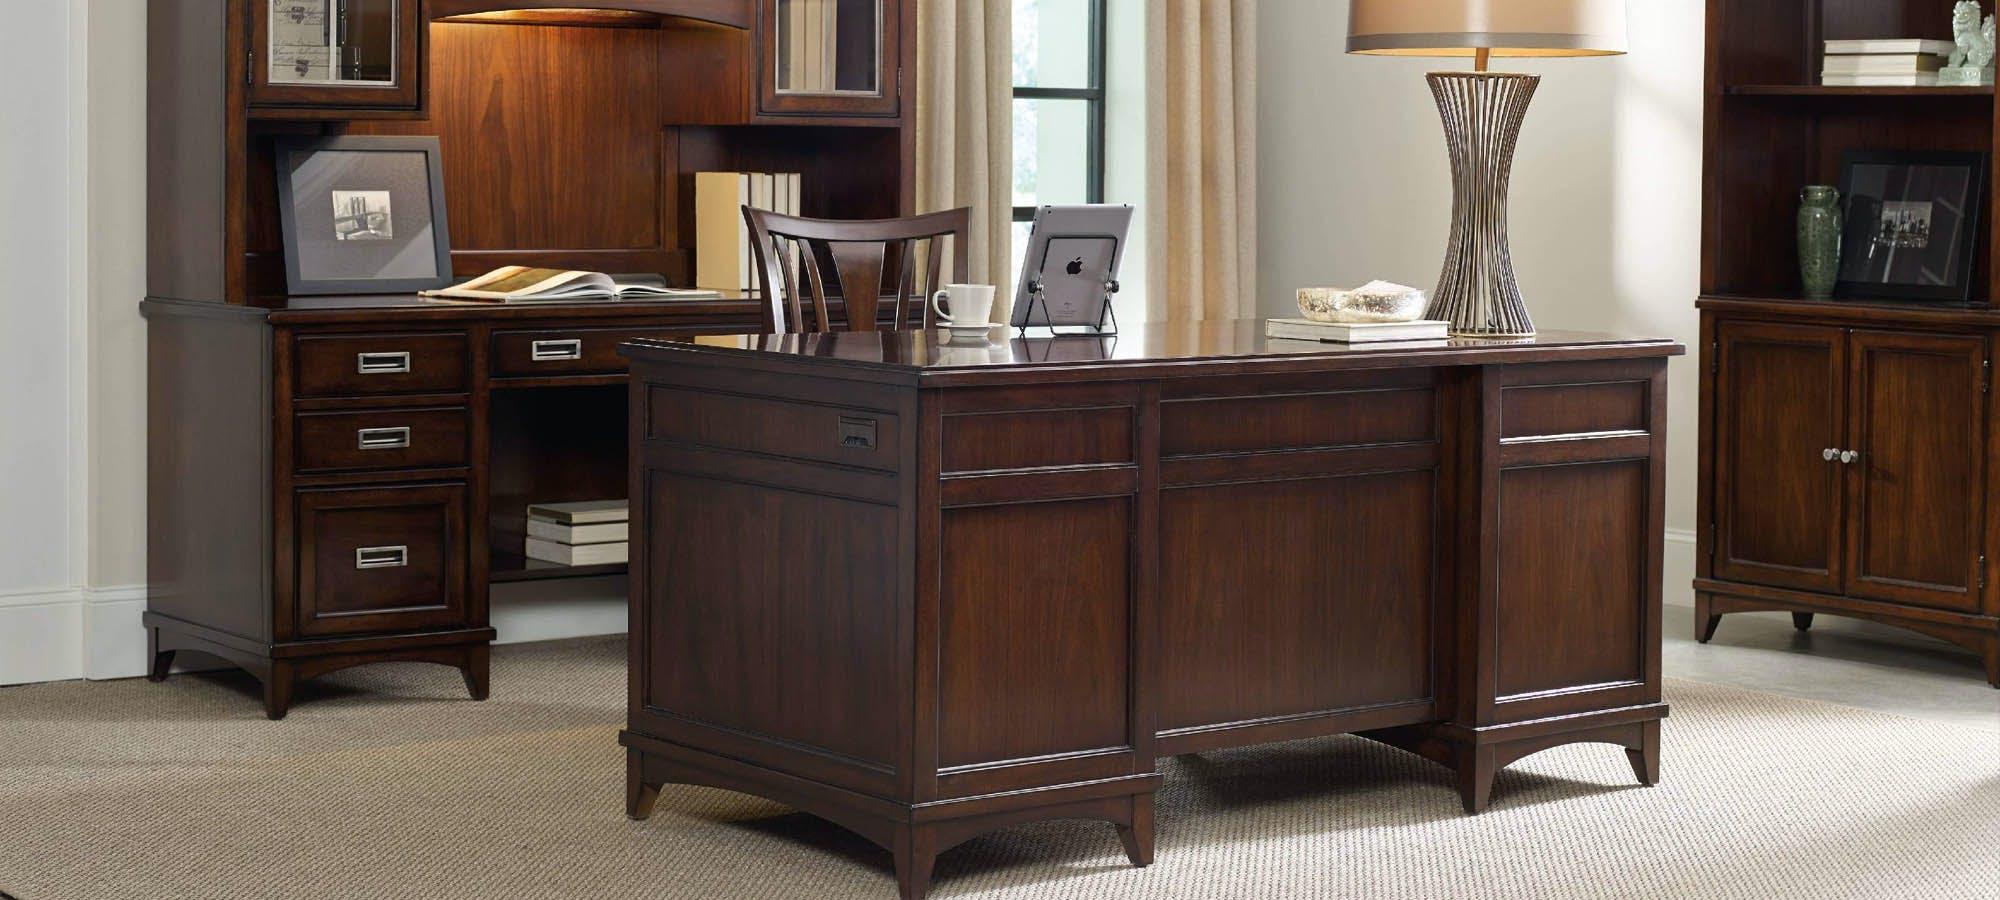 Shop for Home Office Furniture in Cincinnati and Dayton OH